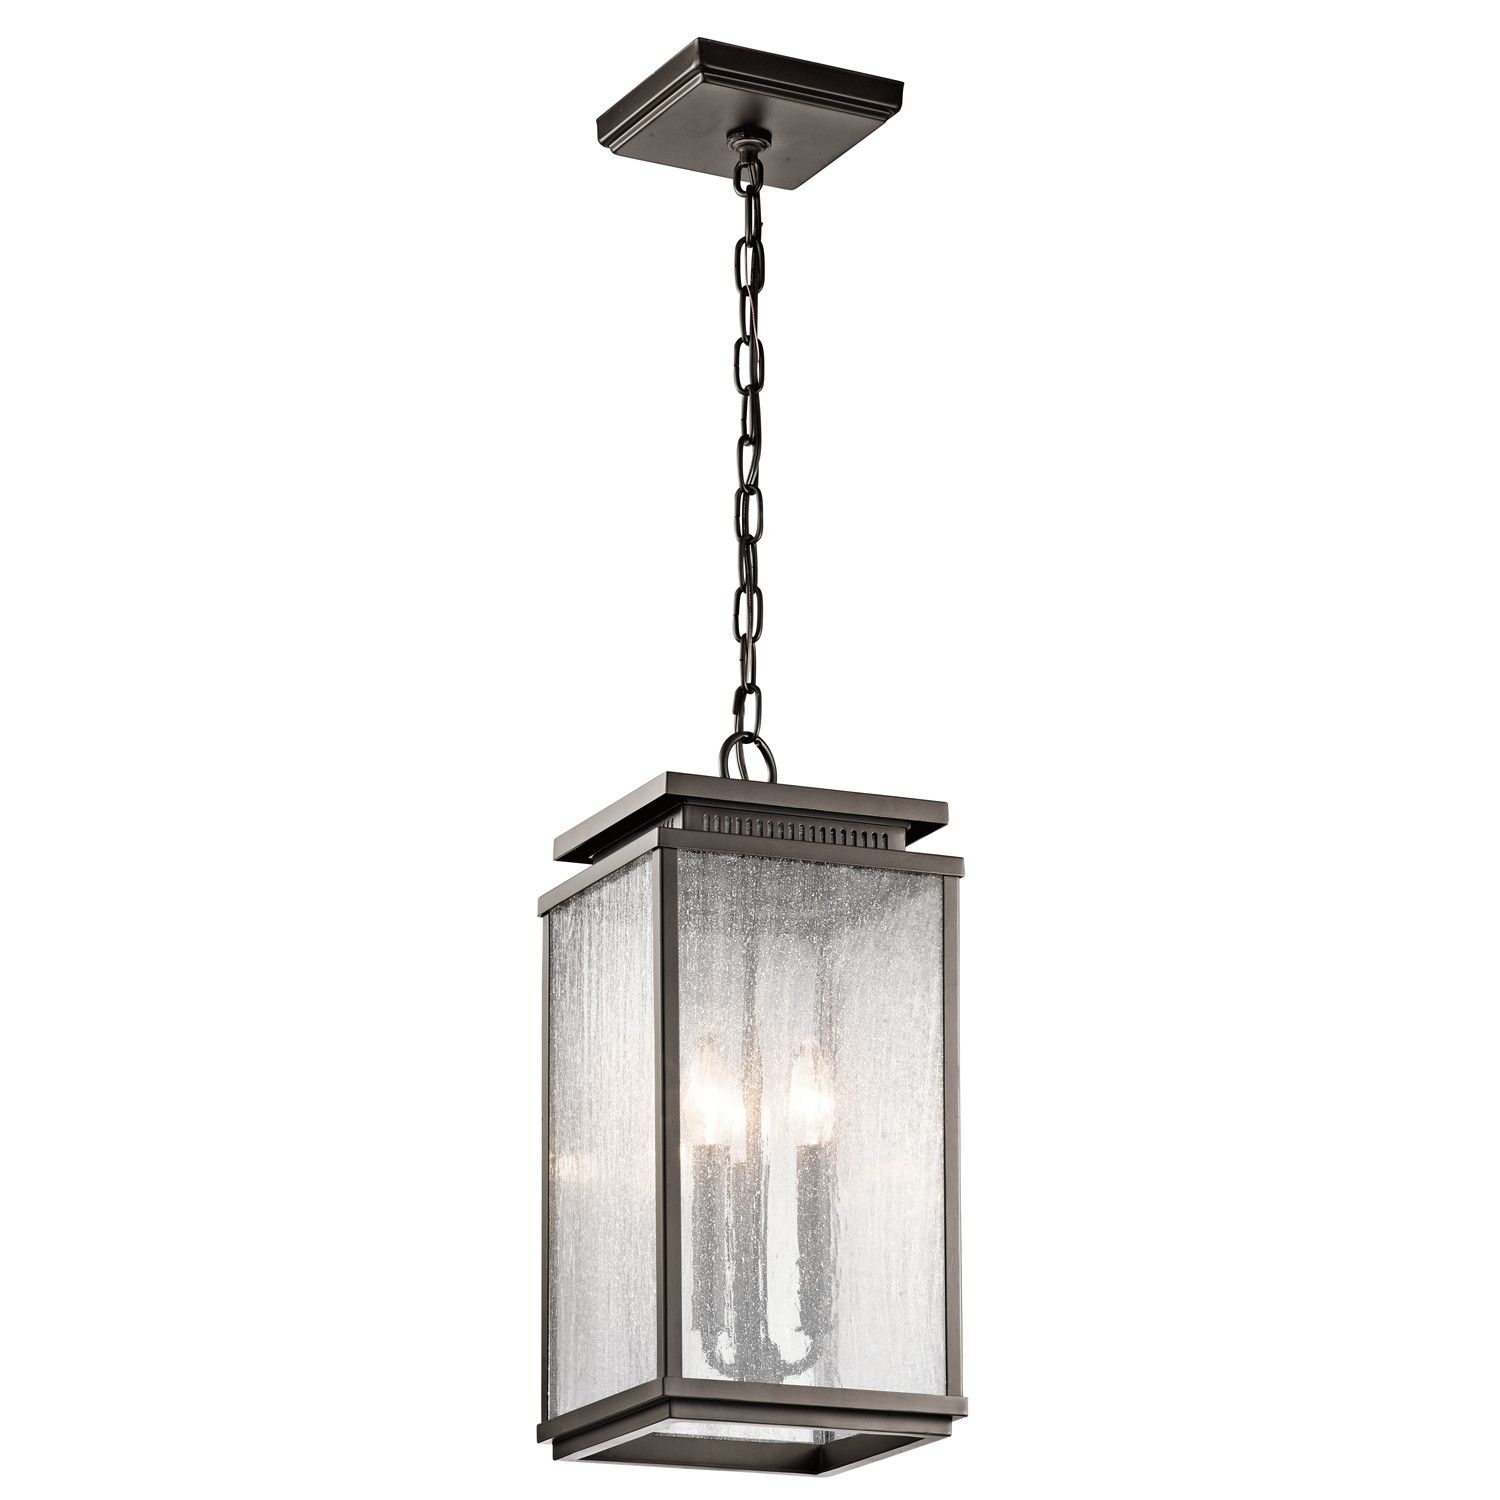 Kichler Manningham 3 Light Outdoor Pendant & Reviews | Wayfair Pertaining To Wayfair Outdoor Hanging Lighting Fixtures (View 12 of 15)